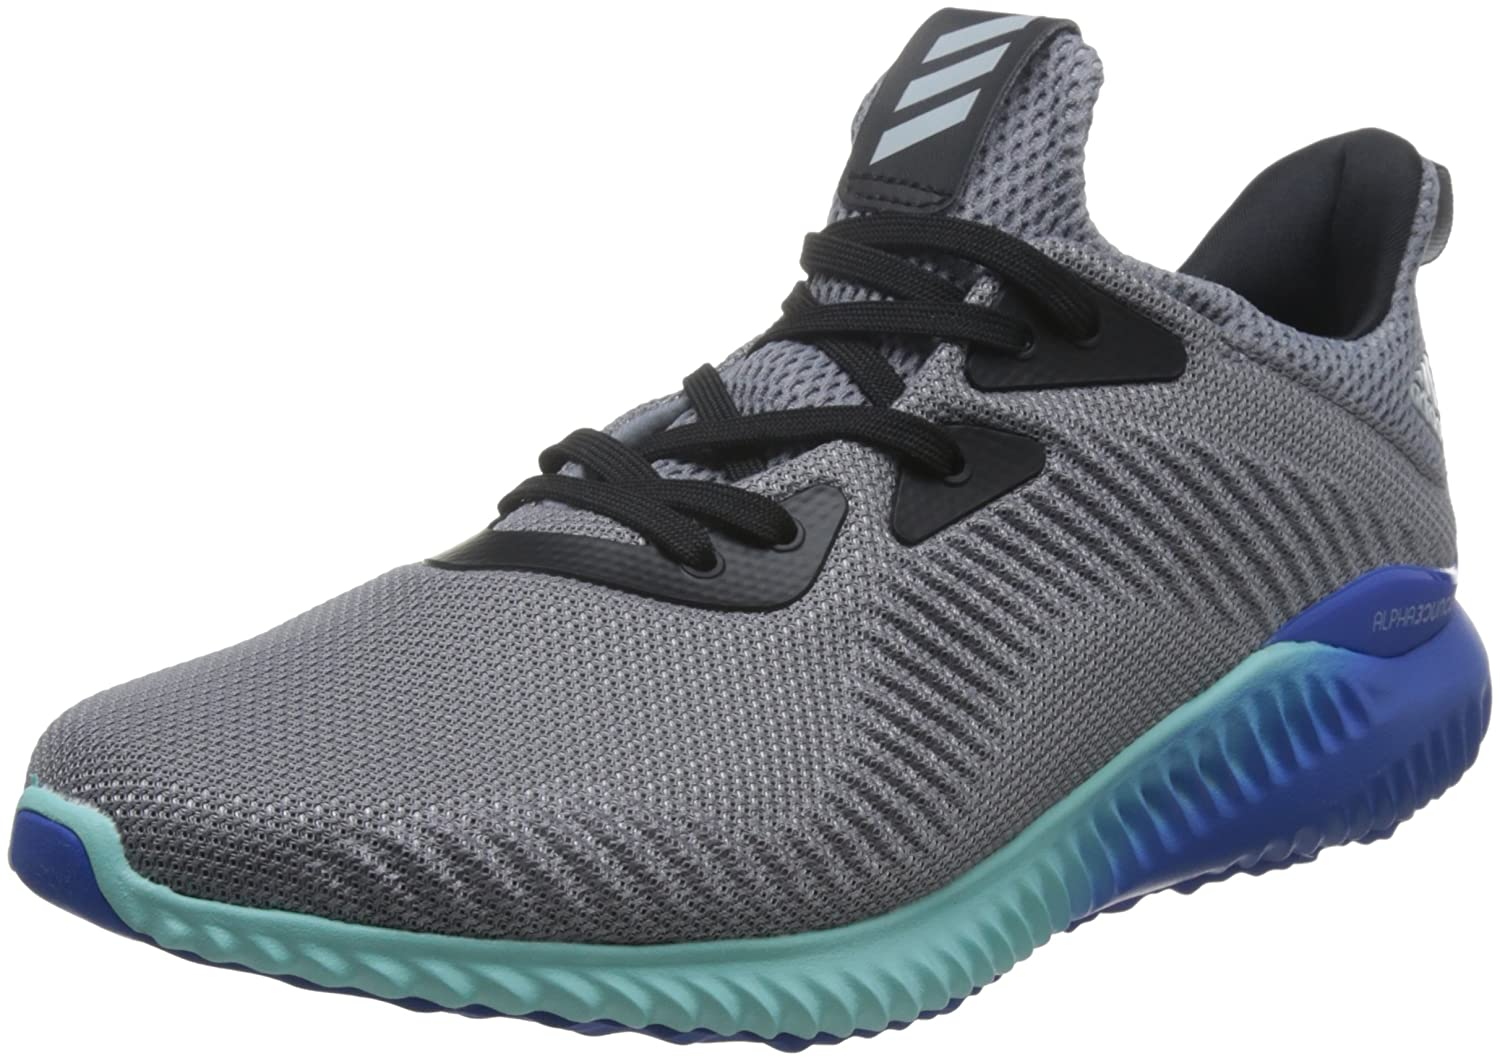 b53bd4a14f9835 Adidas Men s Alphabounce 1 M Running Shoes  Buy Online at Low Prices in  India - Amazon.in